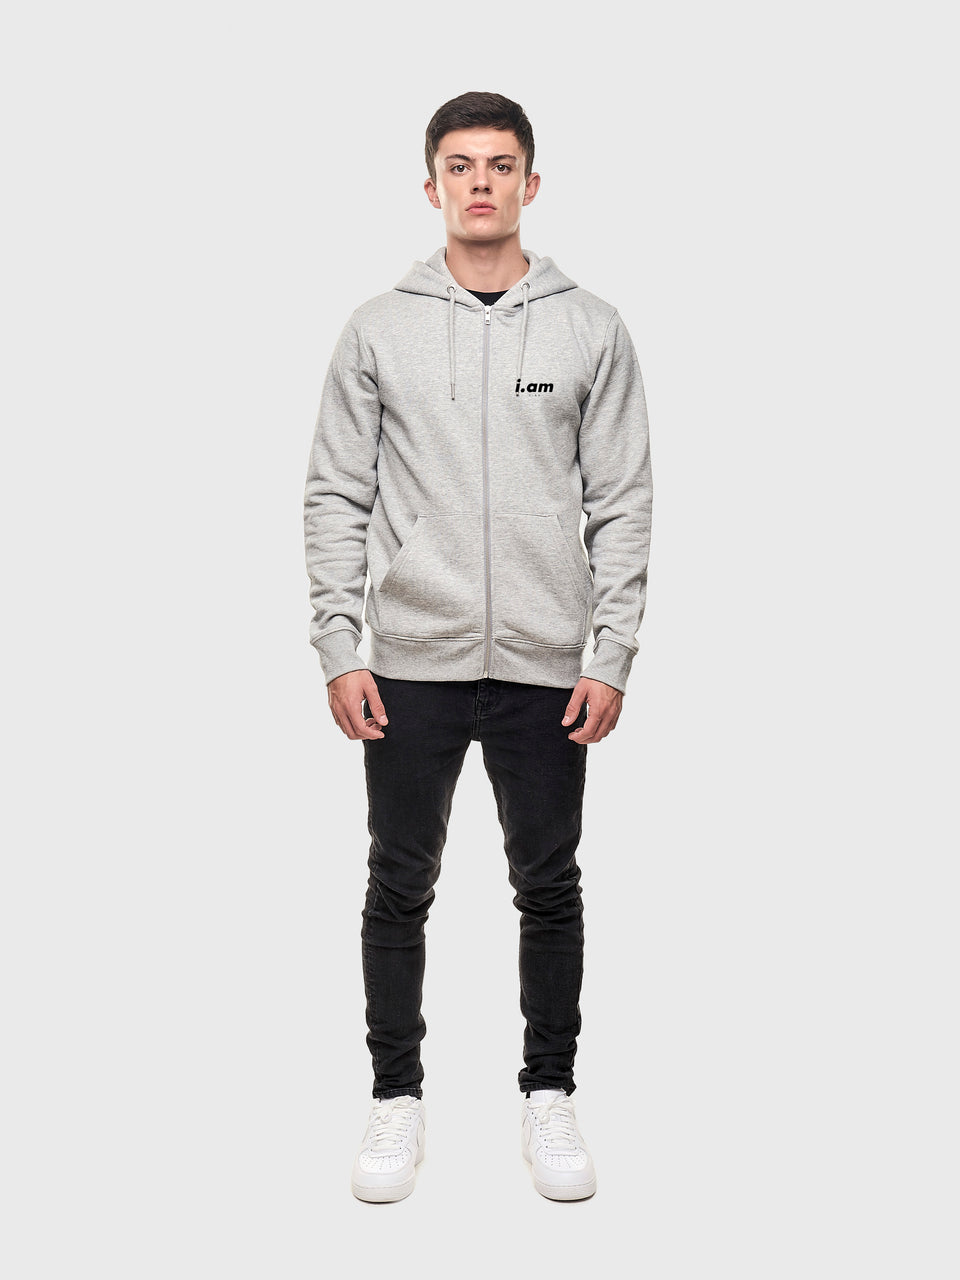 Hundo P - Grey - Unisex zip up hoodie